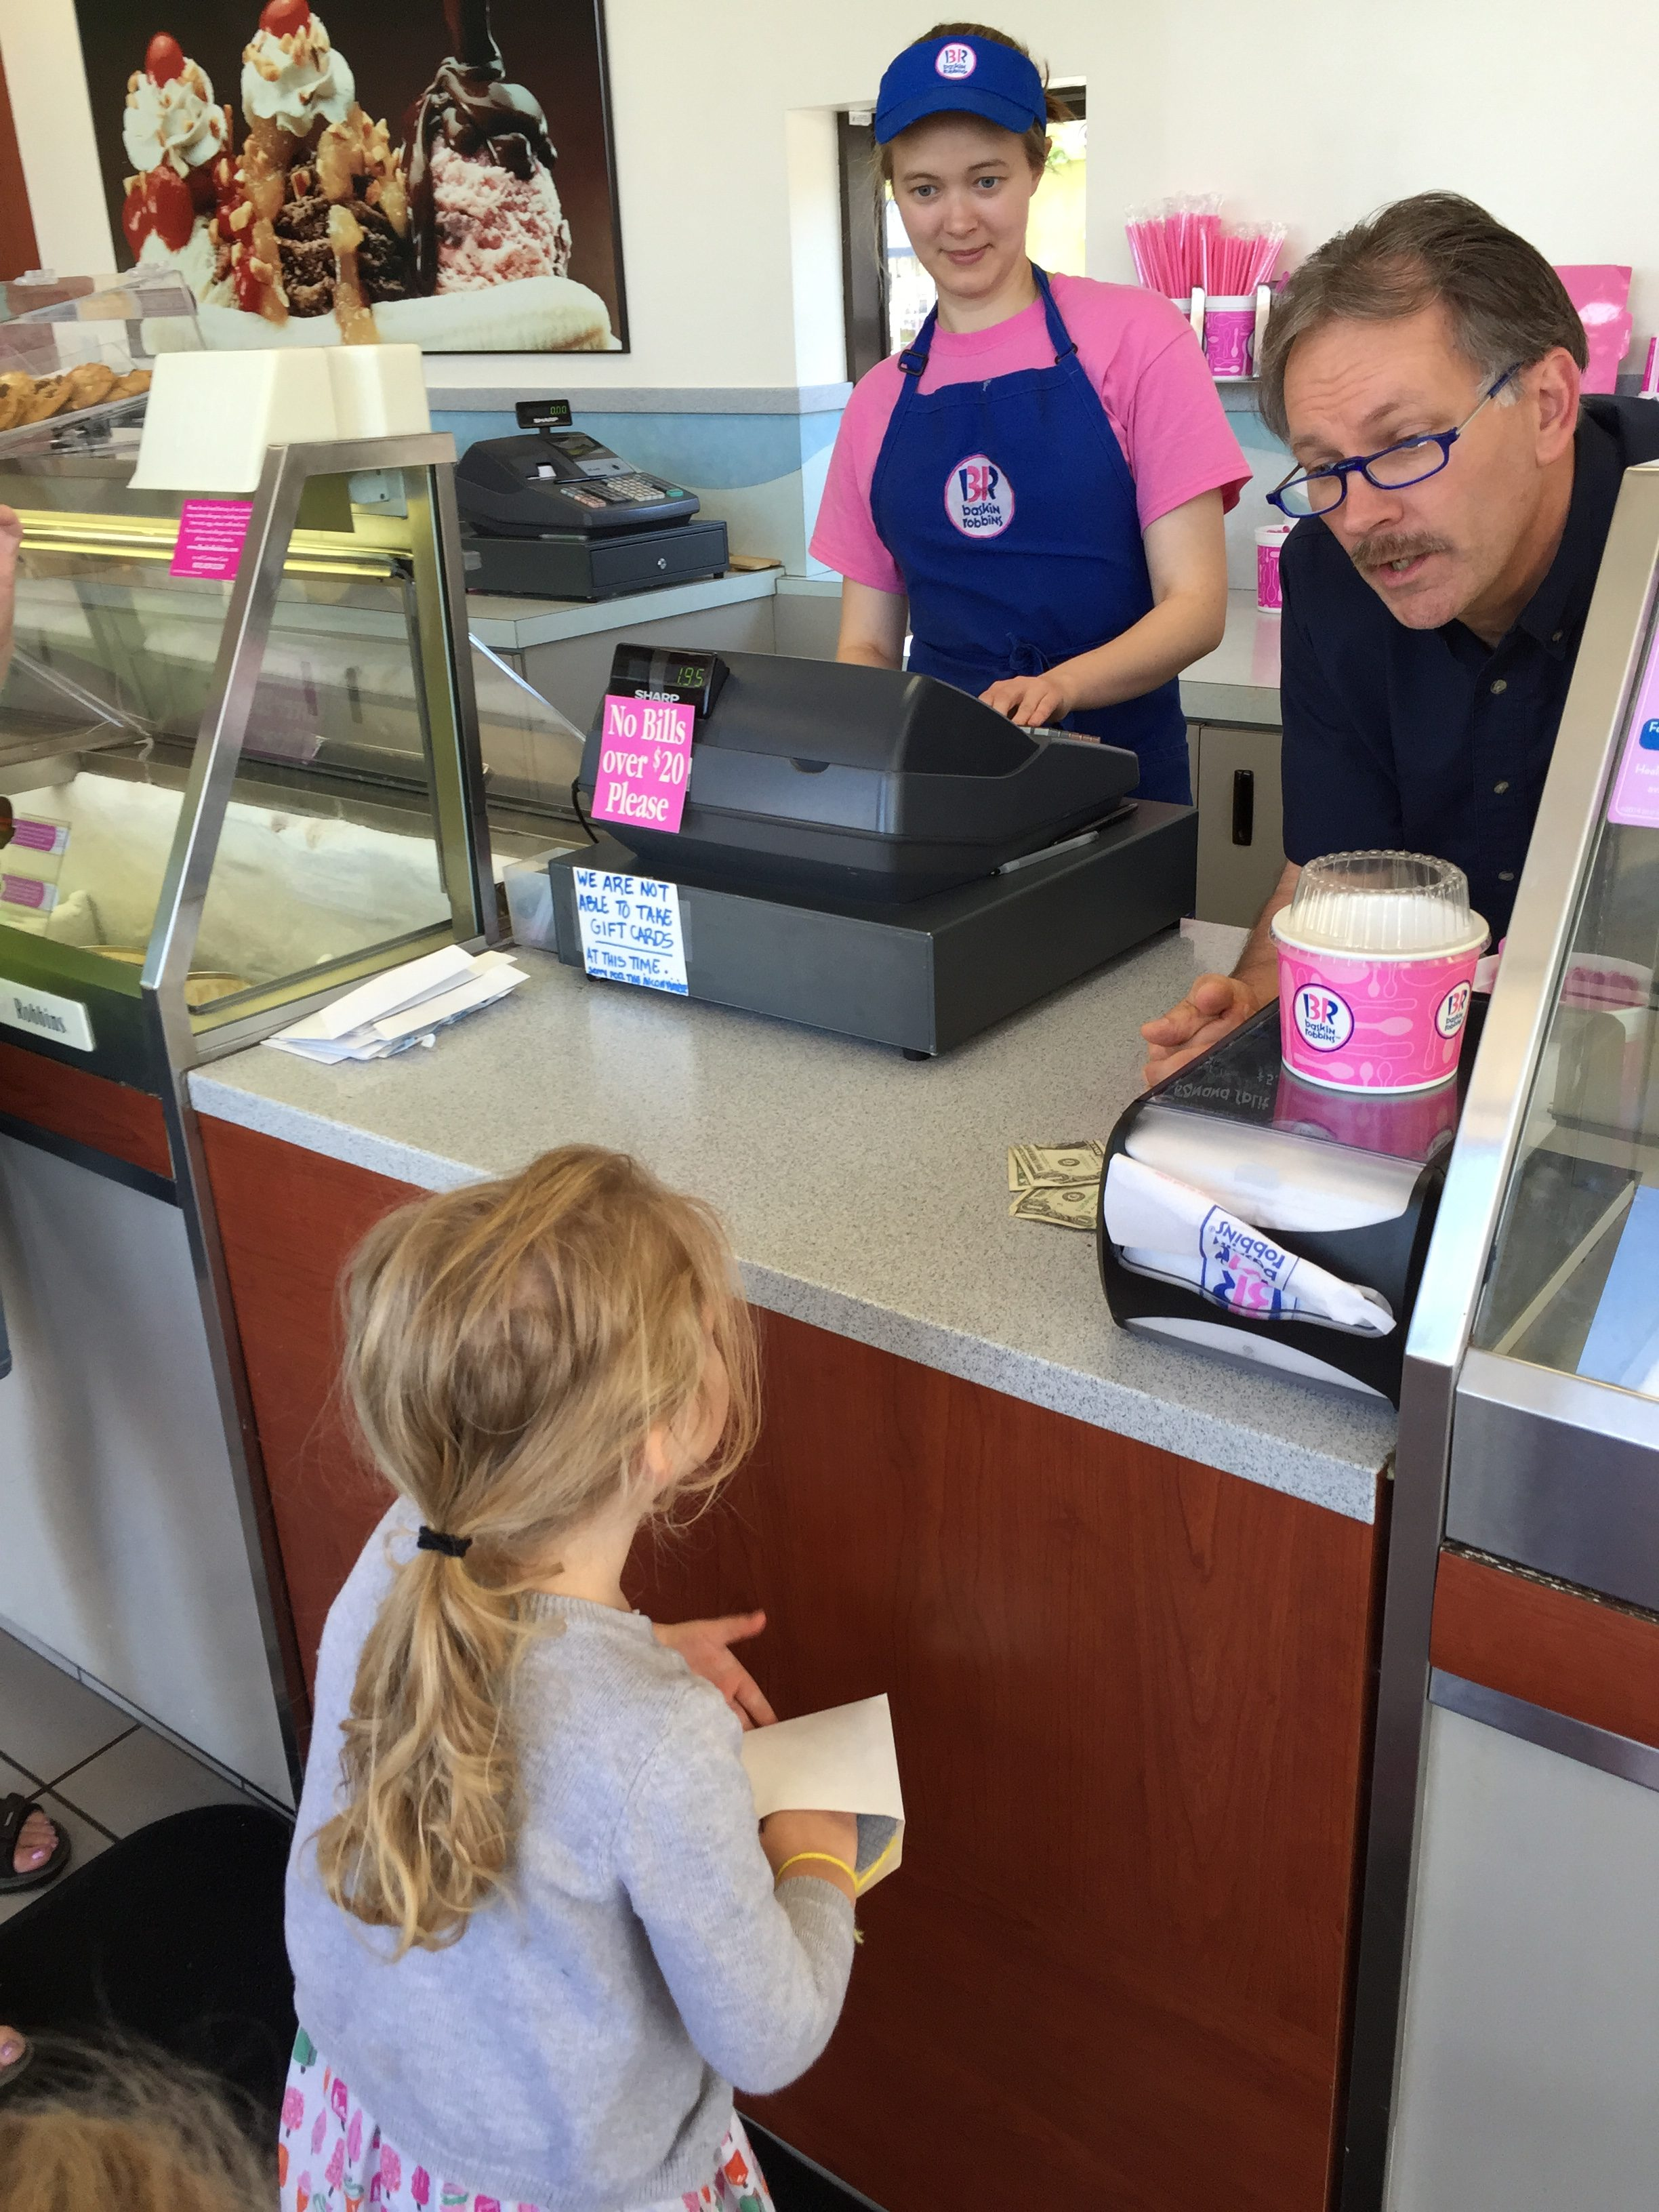 Speaking for a variety of audiences has its rewards for this ice cream lover!